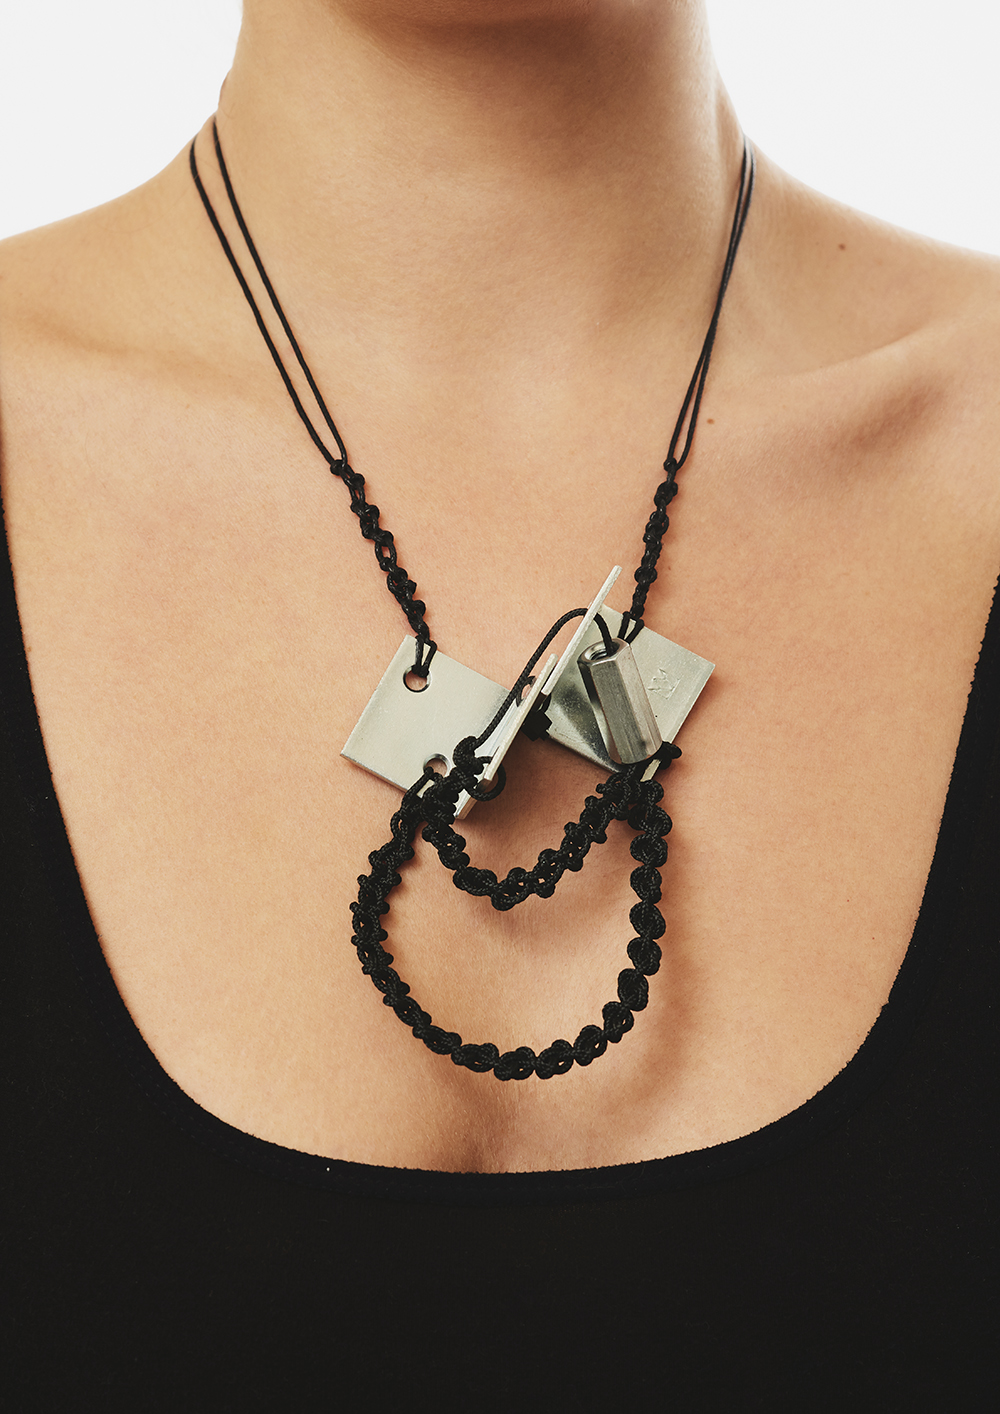 Blackoutlabel necklaces moonlight 474